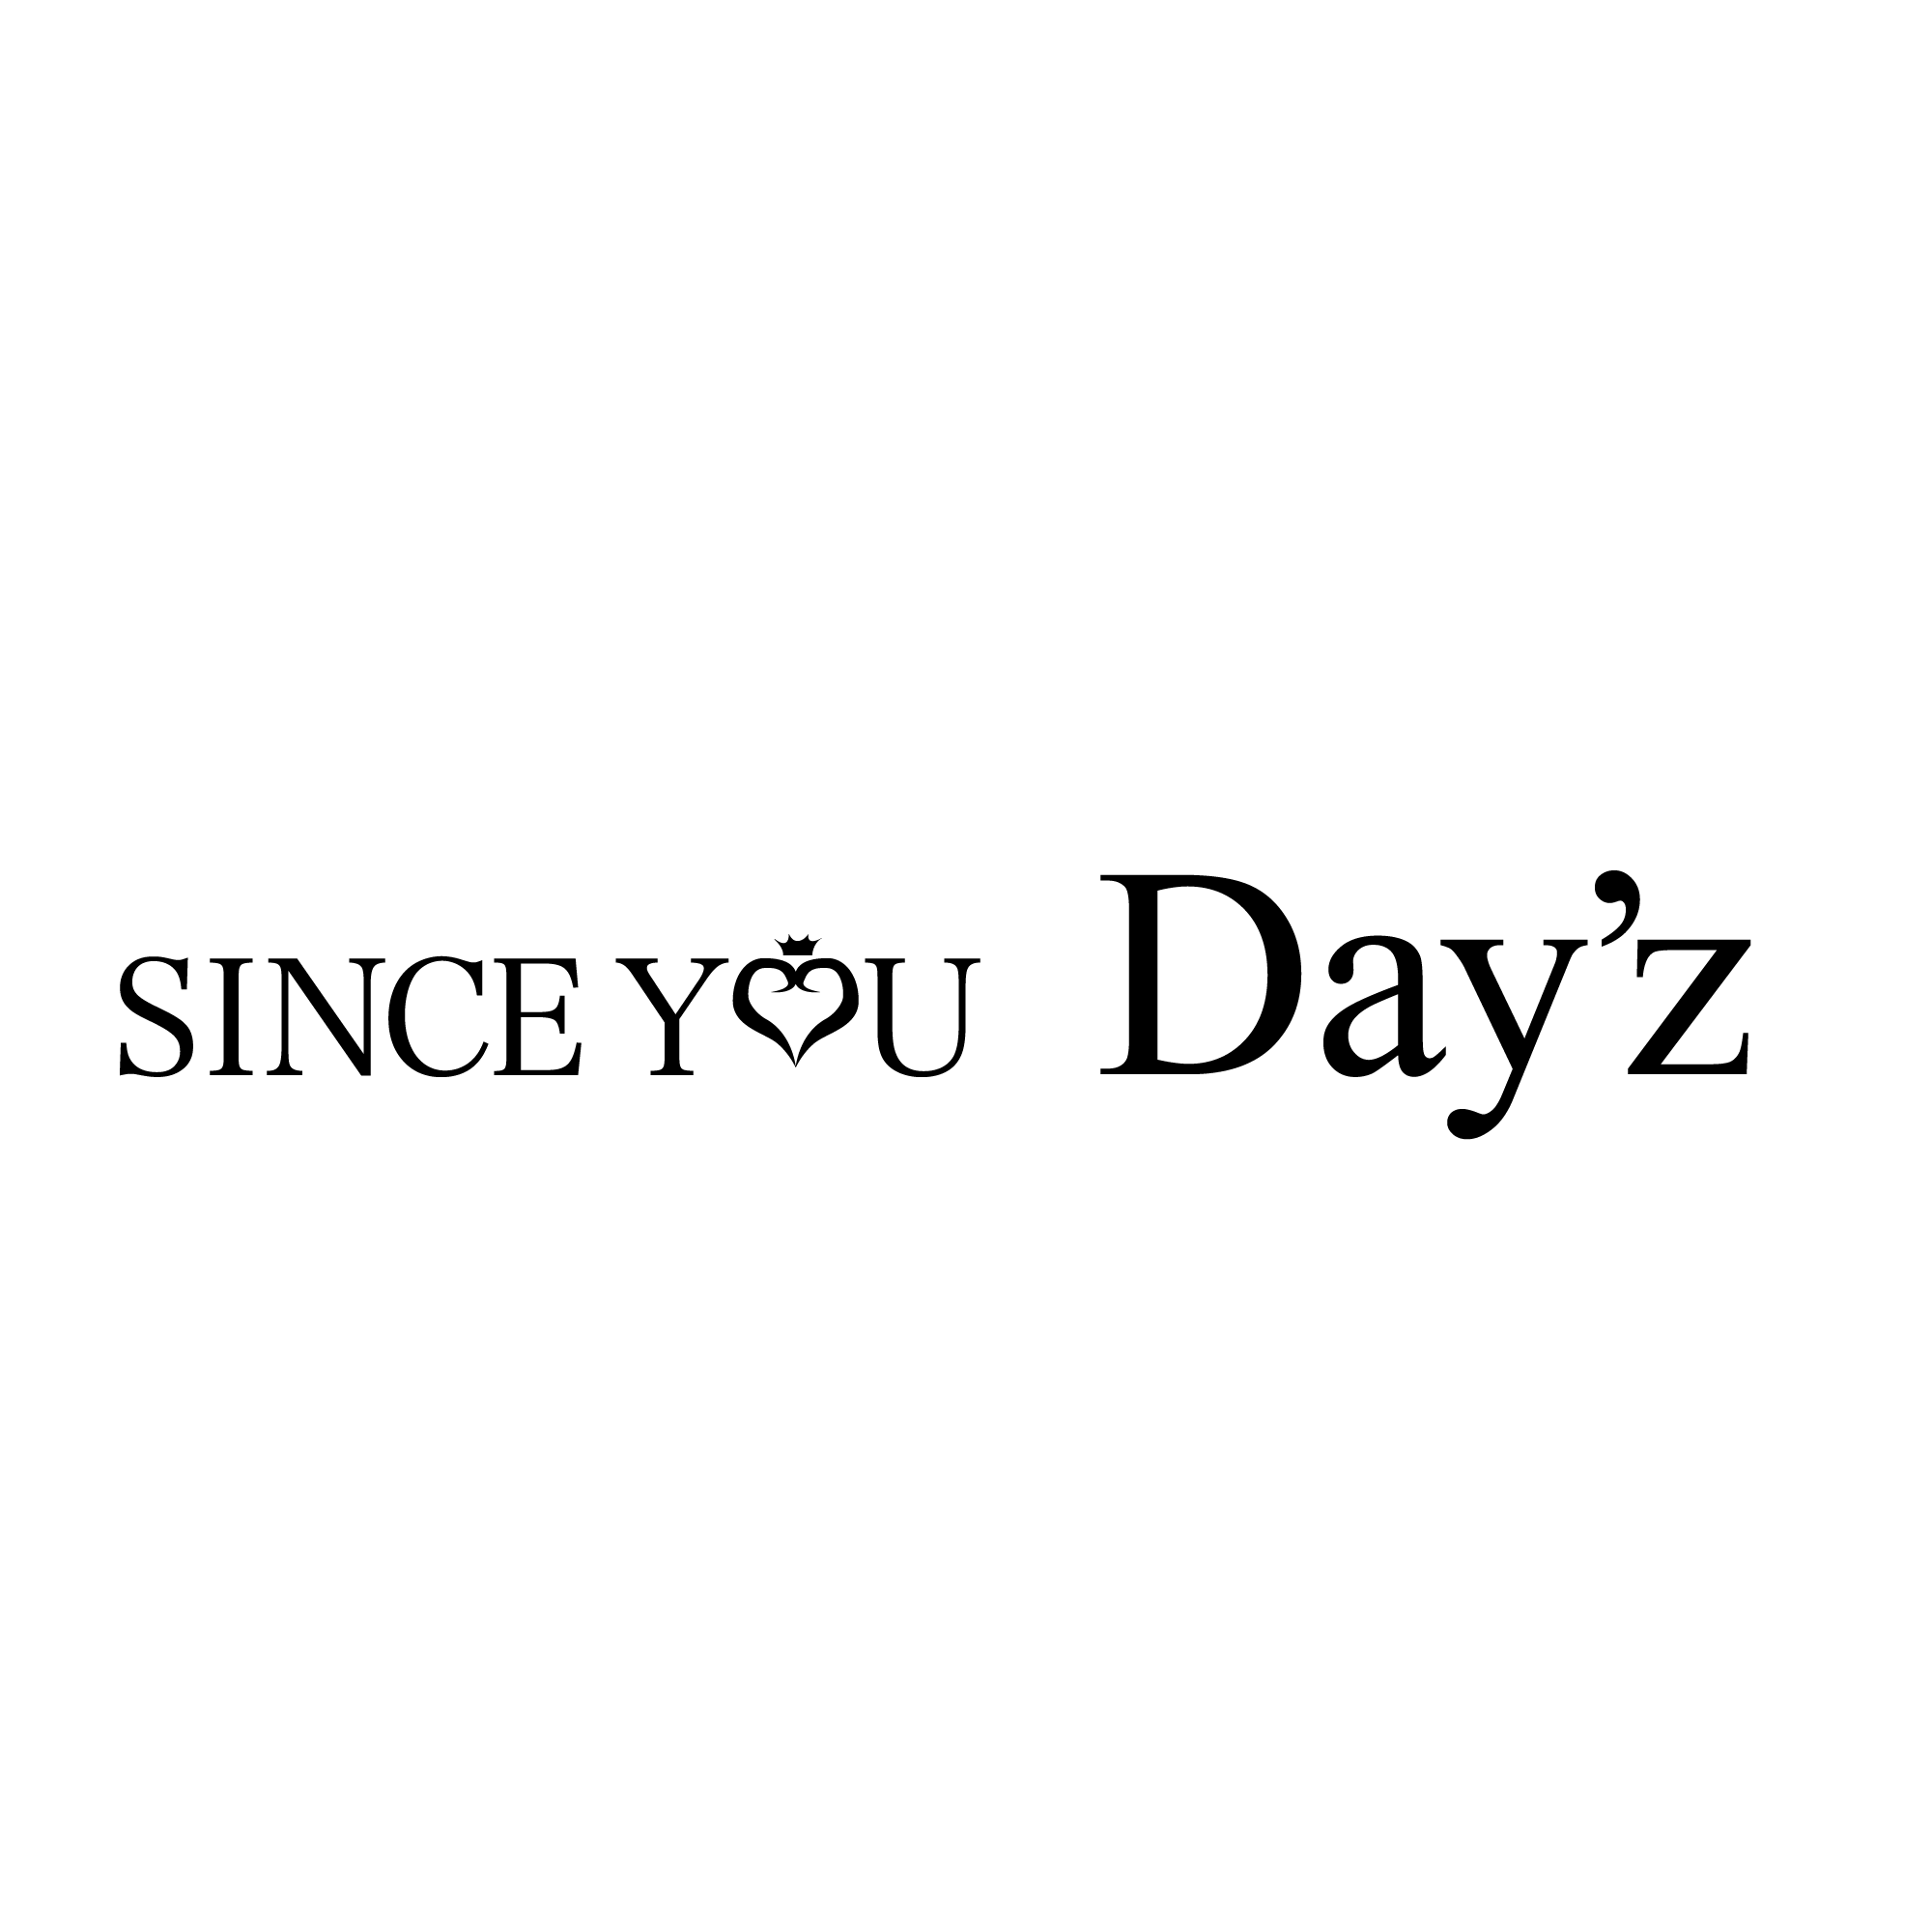 Sinceyou days logo